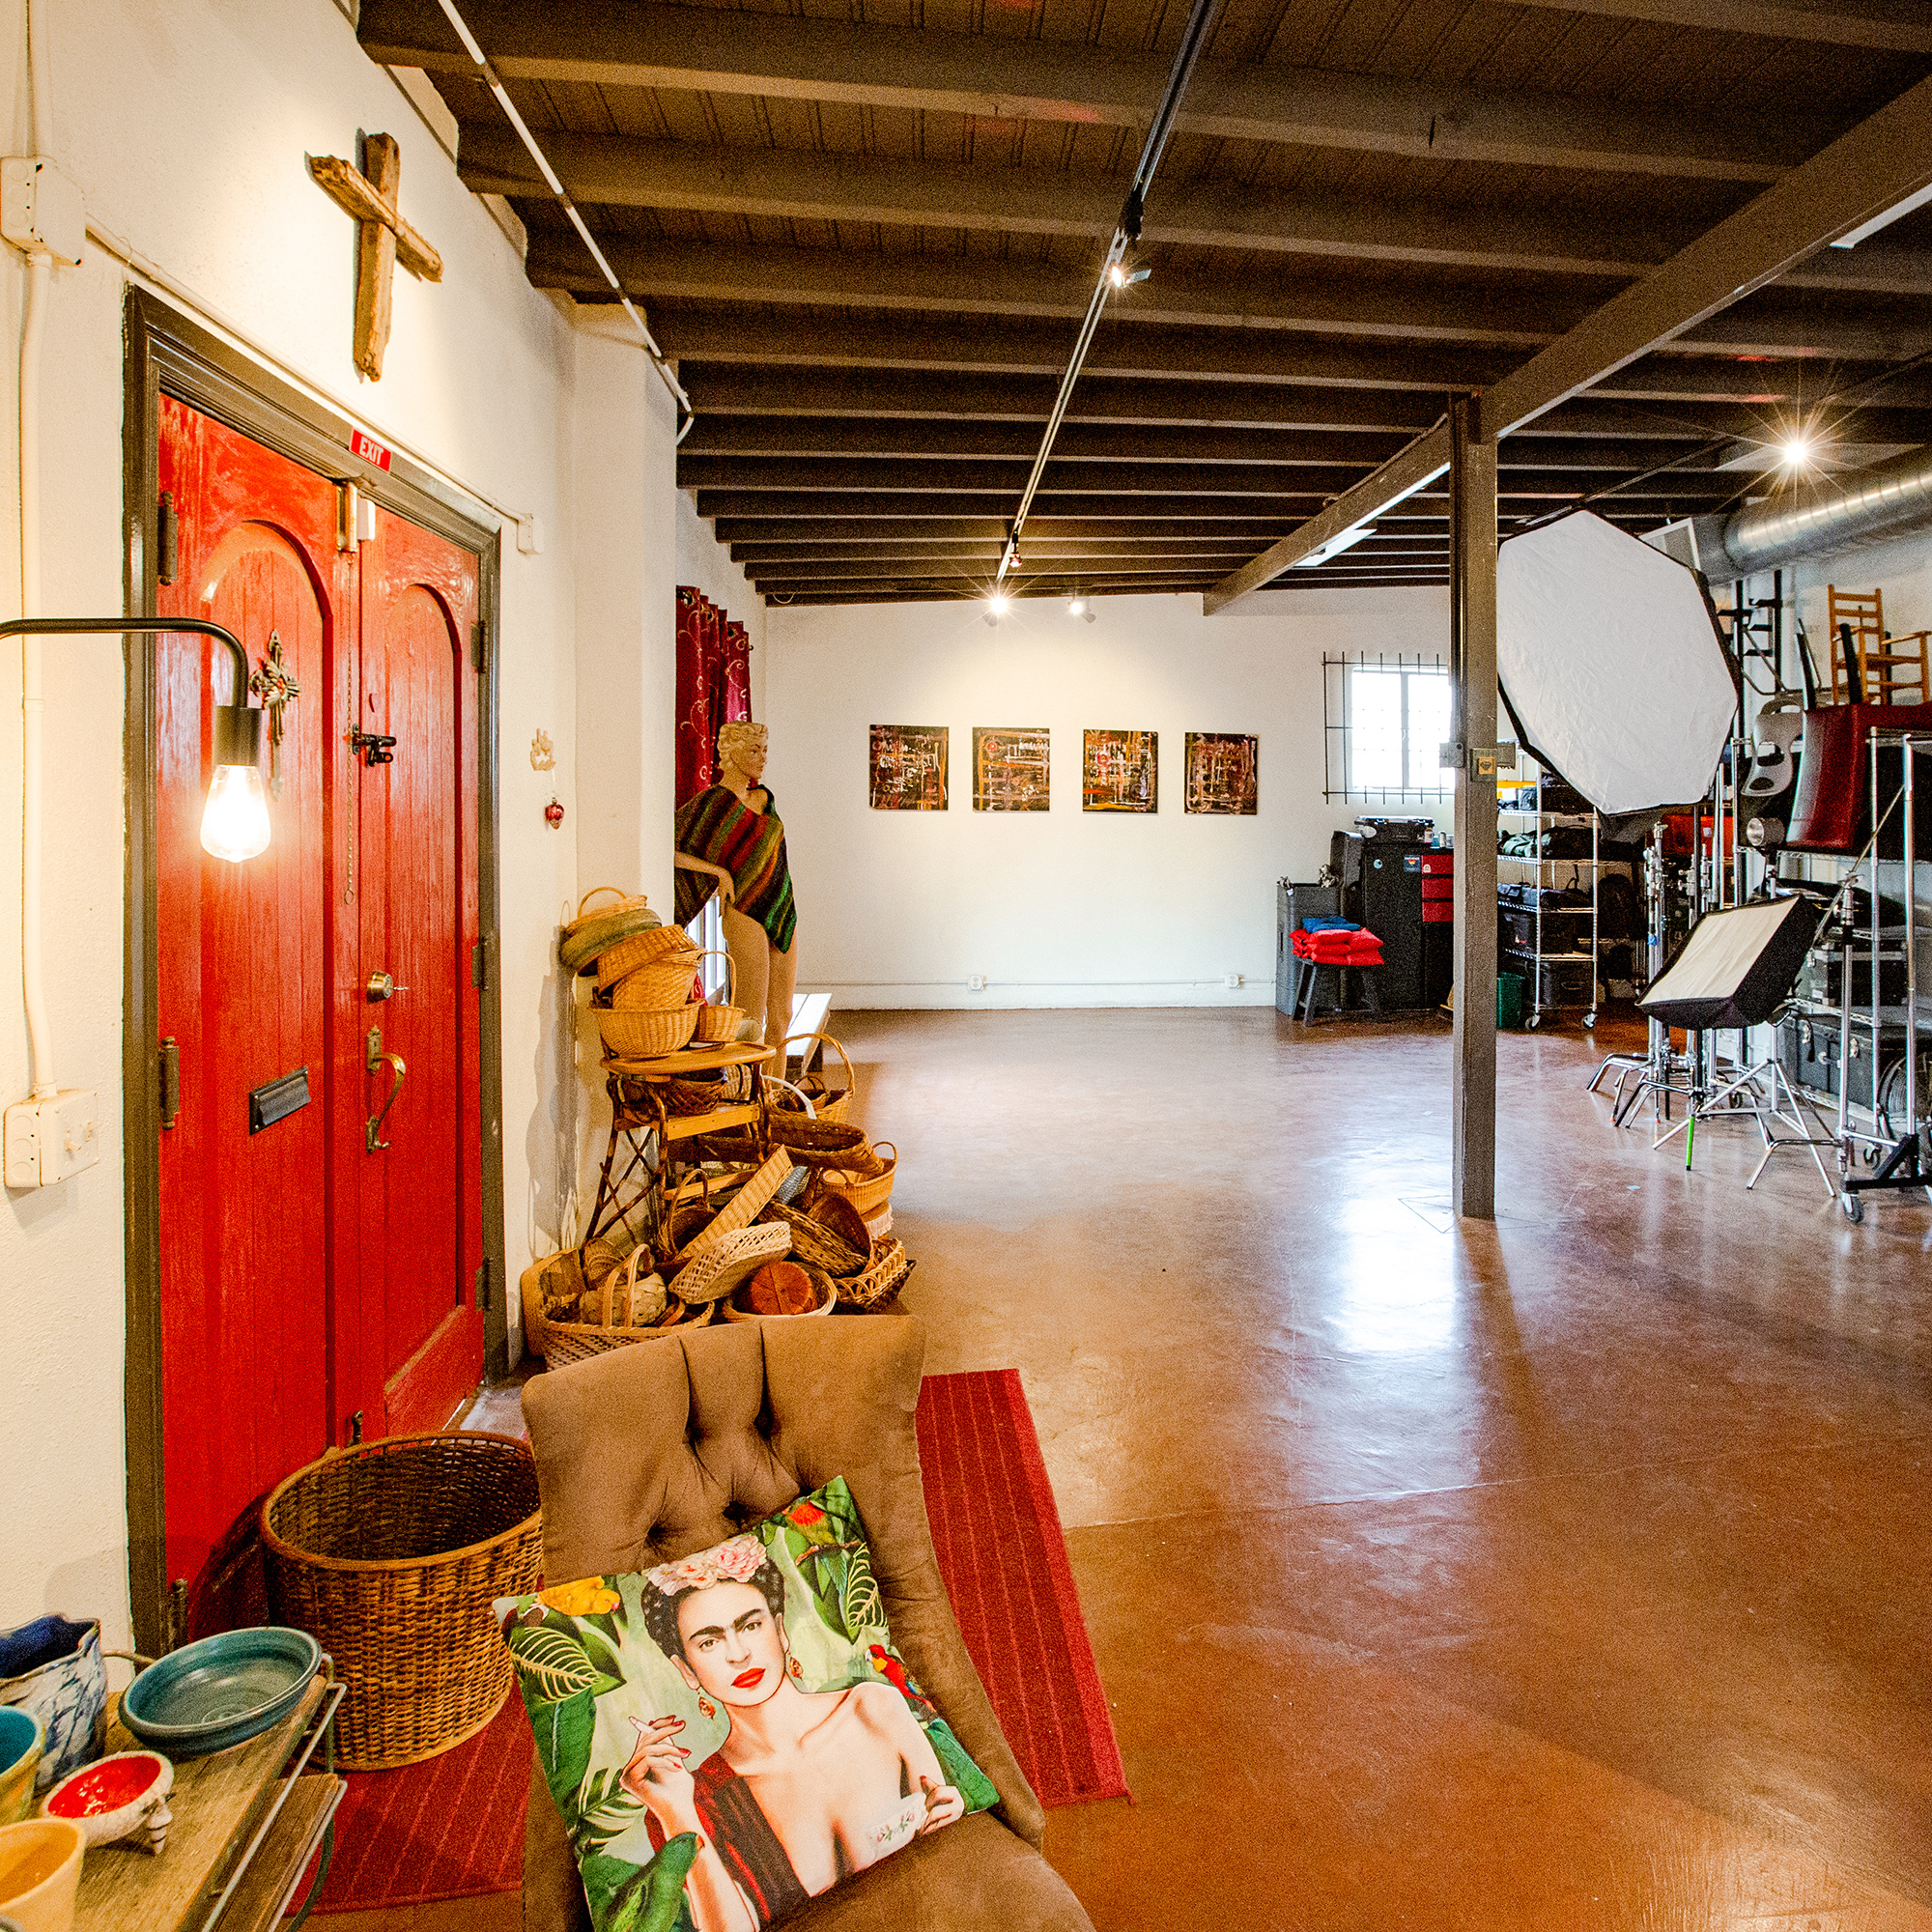 1,100 Square Foot Studio - Our main studio is perfect for all kinds of photography. People. Food. Product. You name it, we've likely shot it here. There's great indirect natural light in the afternoon and the ability to go very dark by closing blackout curtains. With an air conditioner unit dedicated to the space, we're cool when it's hot outside. Our studio, our dedicated restroom and most of the facilities are ADA accessible.